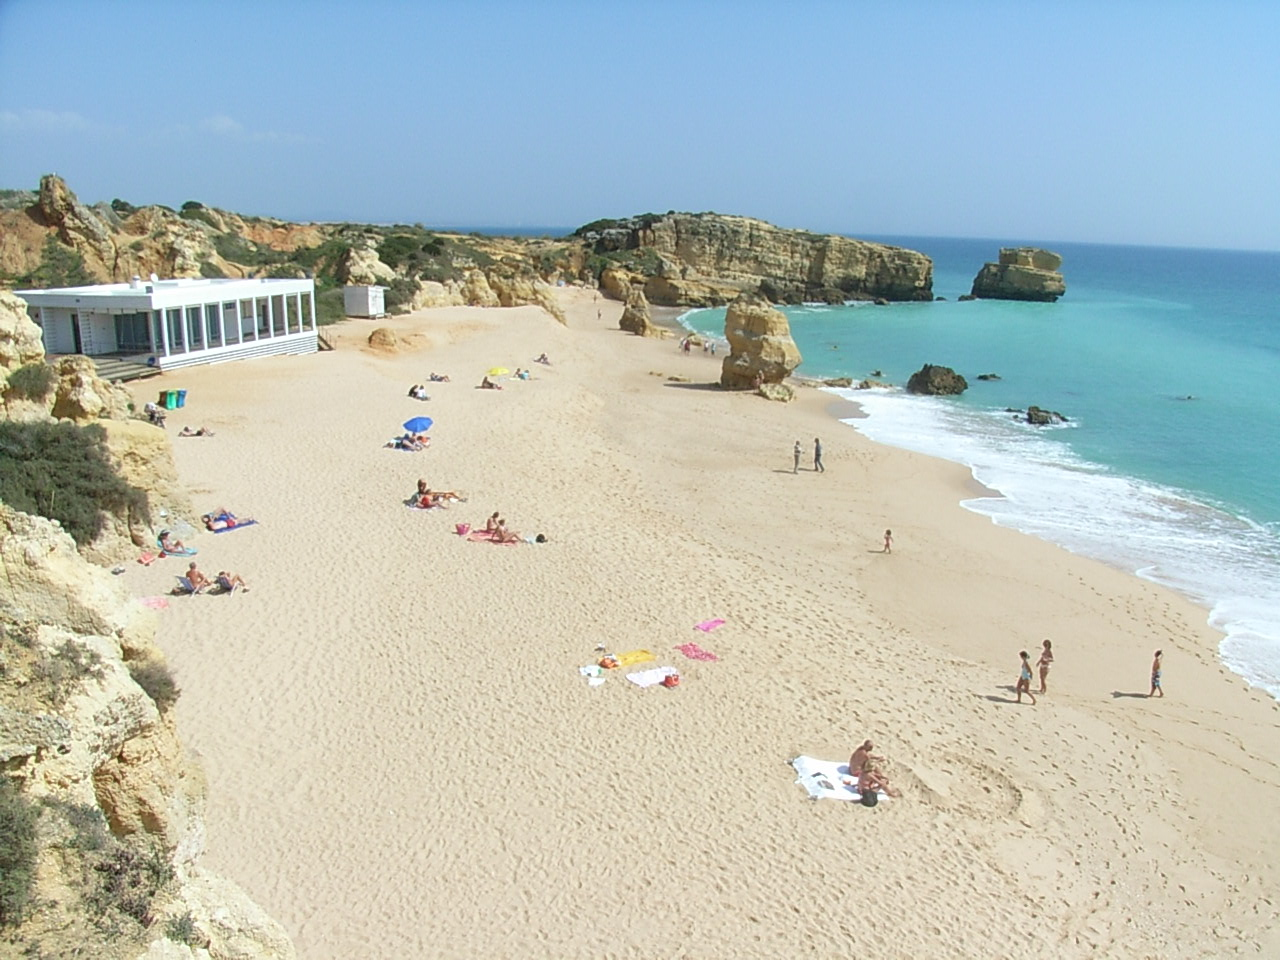 West of Albufeira, there are many Blue Flag Beaches like this one in Sao Rafael.